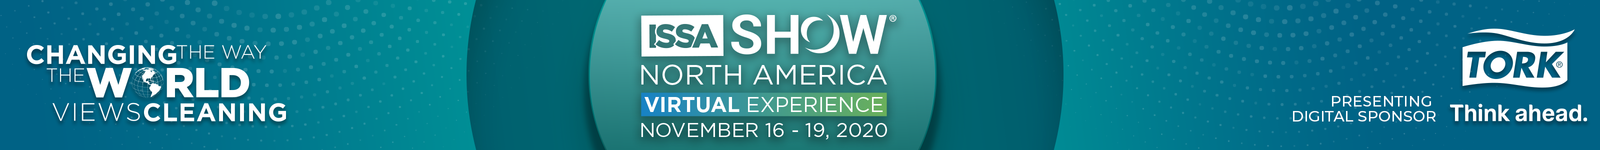 ISSA Show North America Virtual Experience logo